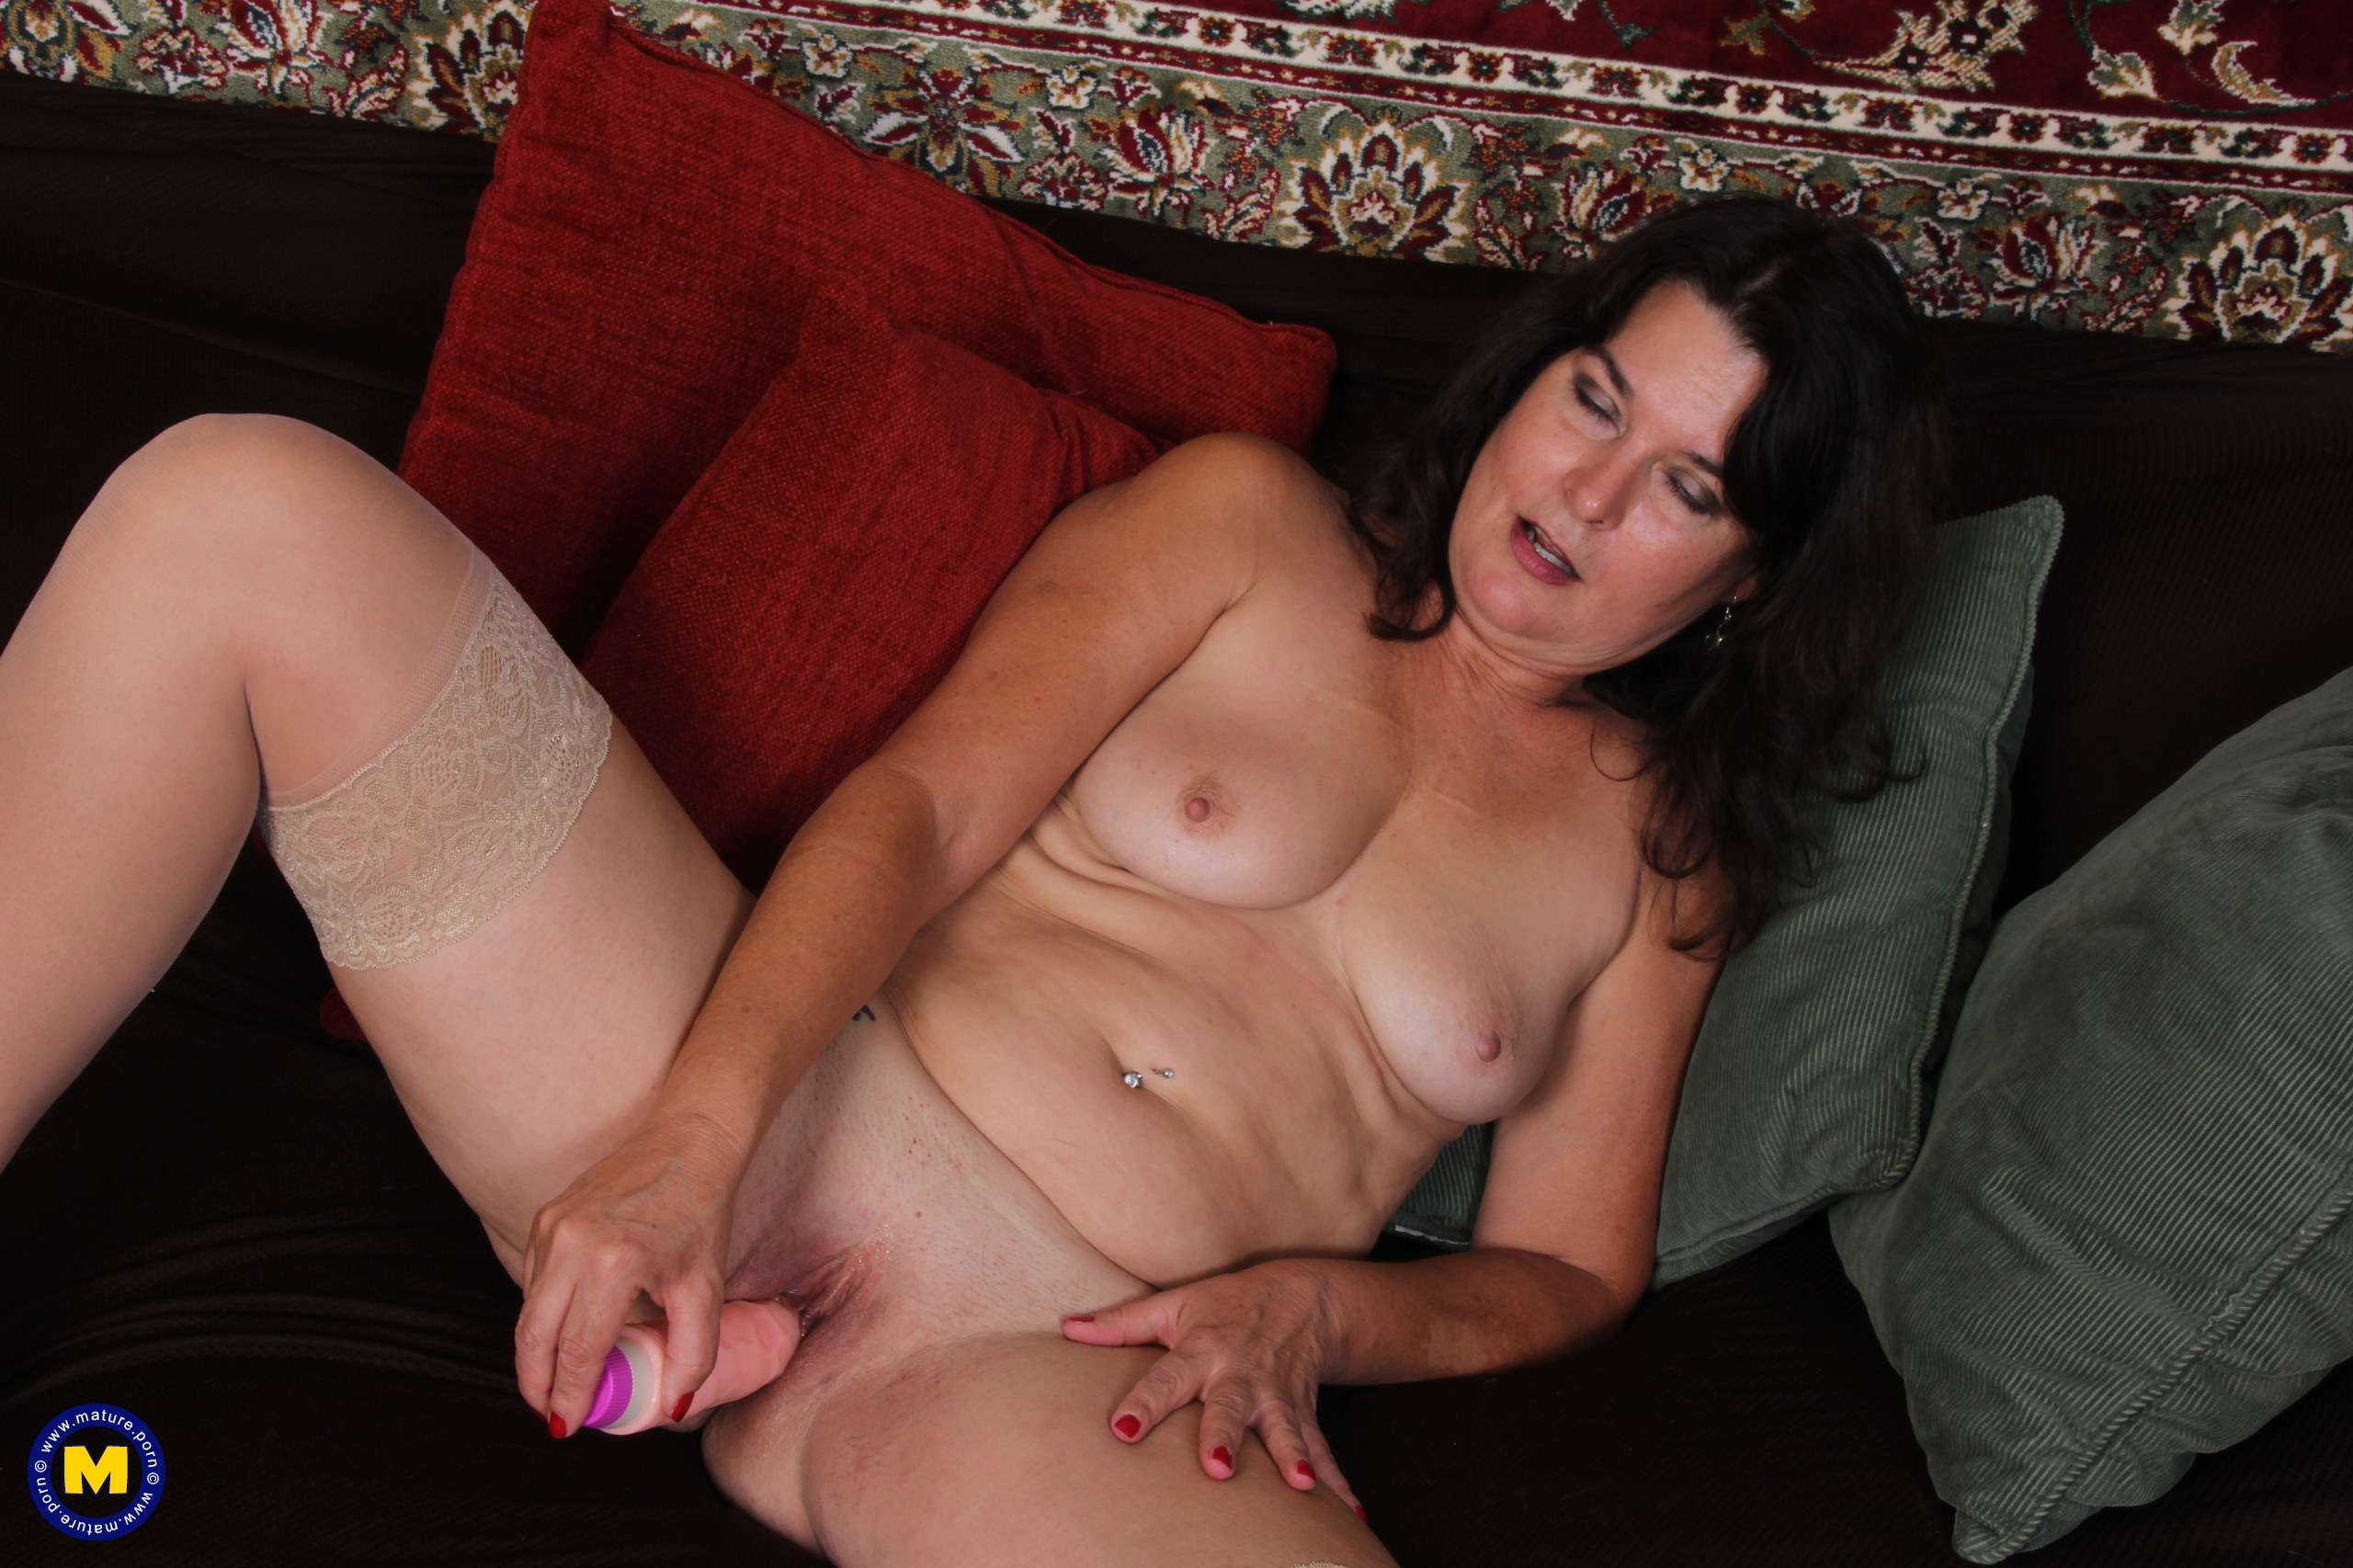 American Mature Carrie playing with her pussy